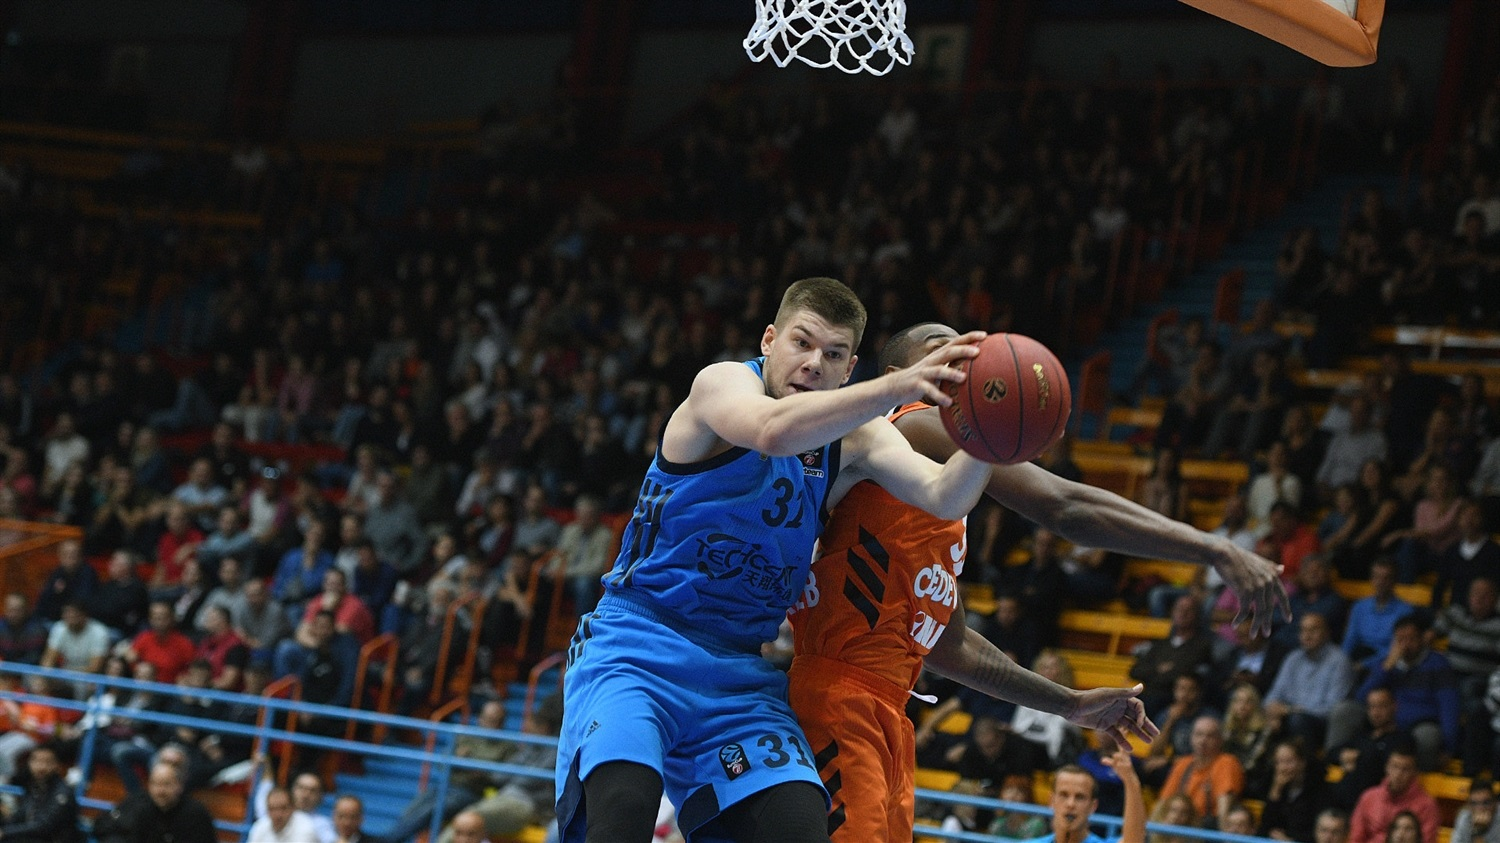 Rokas Giedraitis - ALBA Berlin (photo Cedevita) - EC18